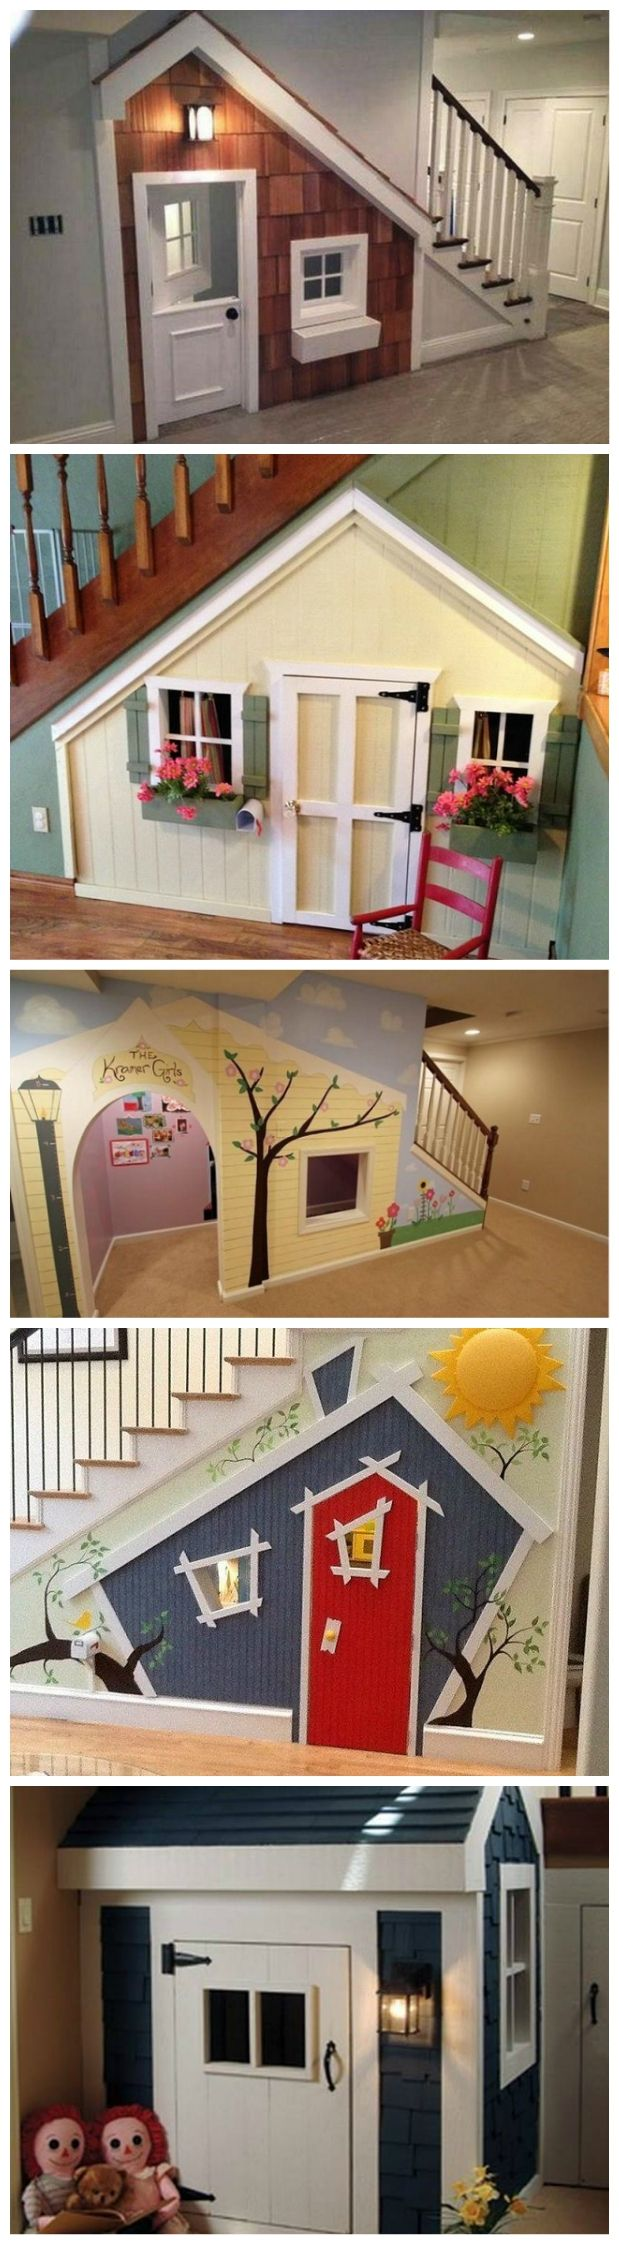 Kids Indoor Playhouse Under Stairs.   Pepino Home Decor Design Cool Kids  Indoor Playhouse Under Stairs.